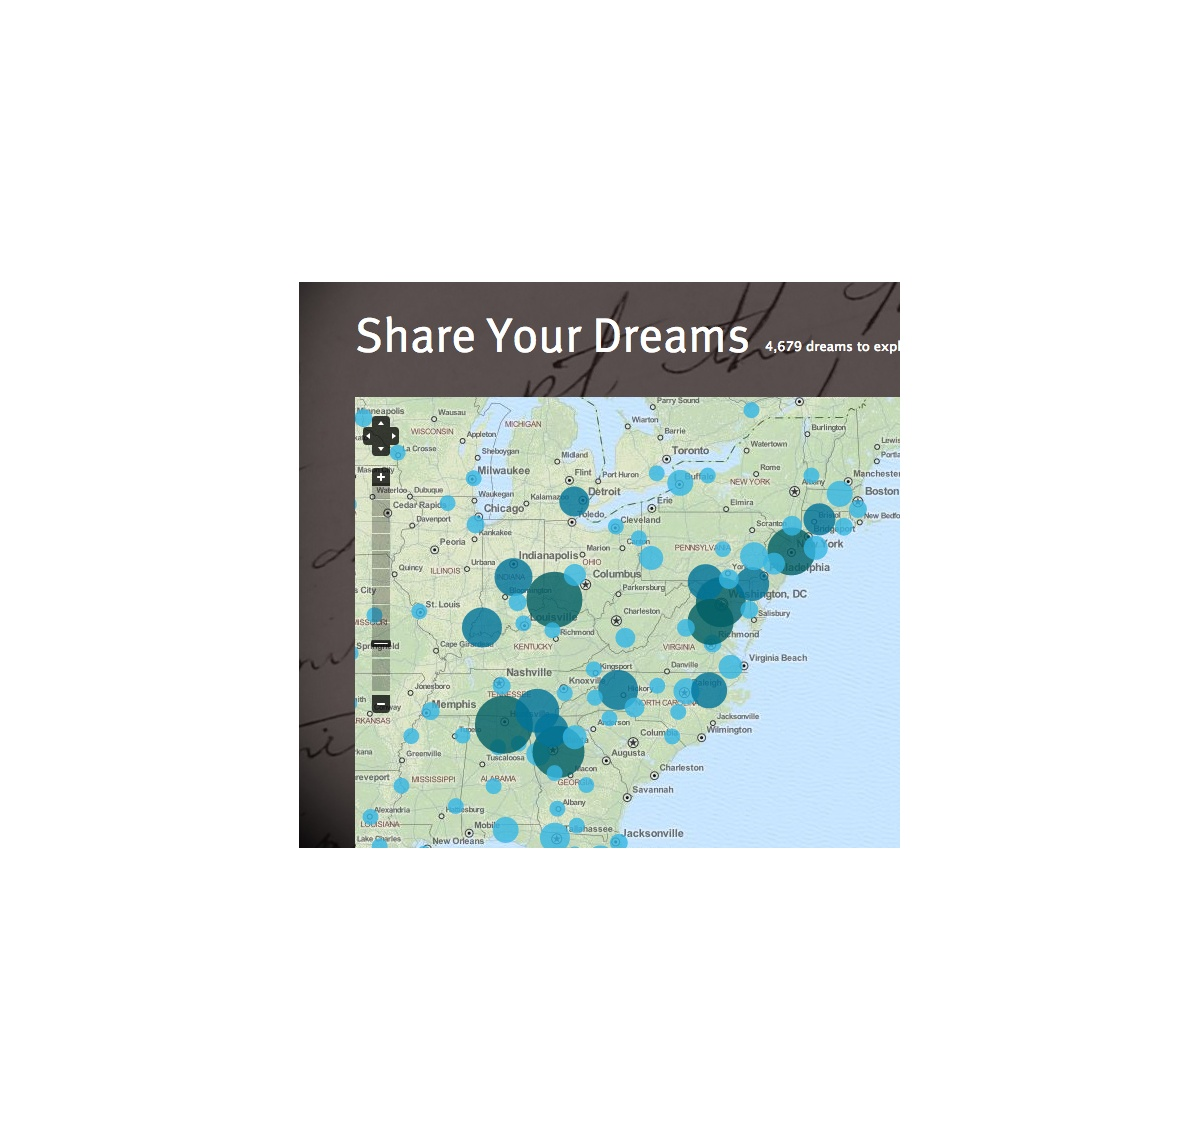 Project image 2 for MLK King Center Dreams, JP Morgan Chase & Co.